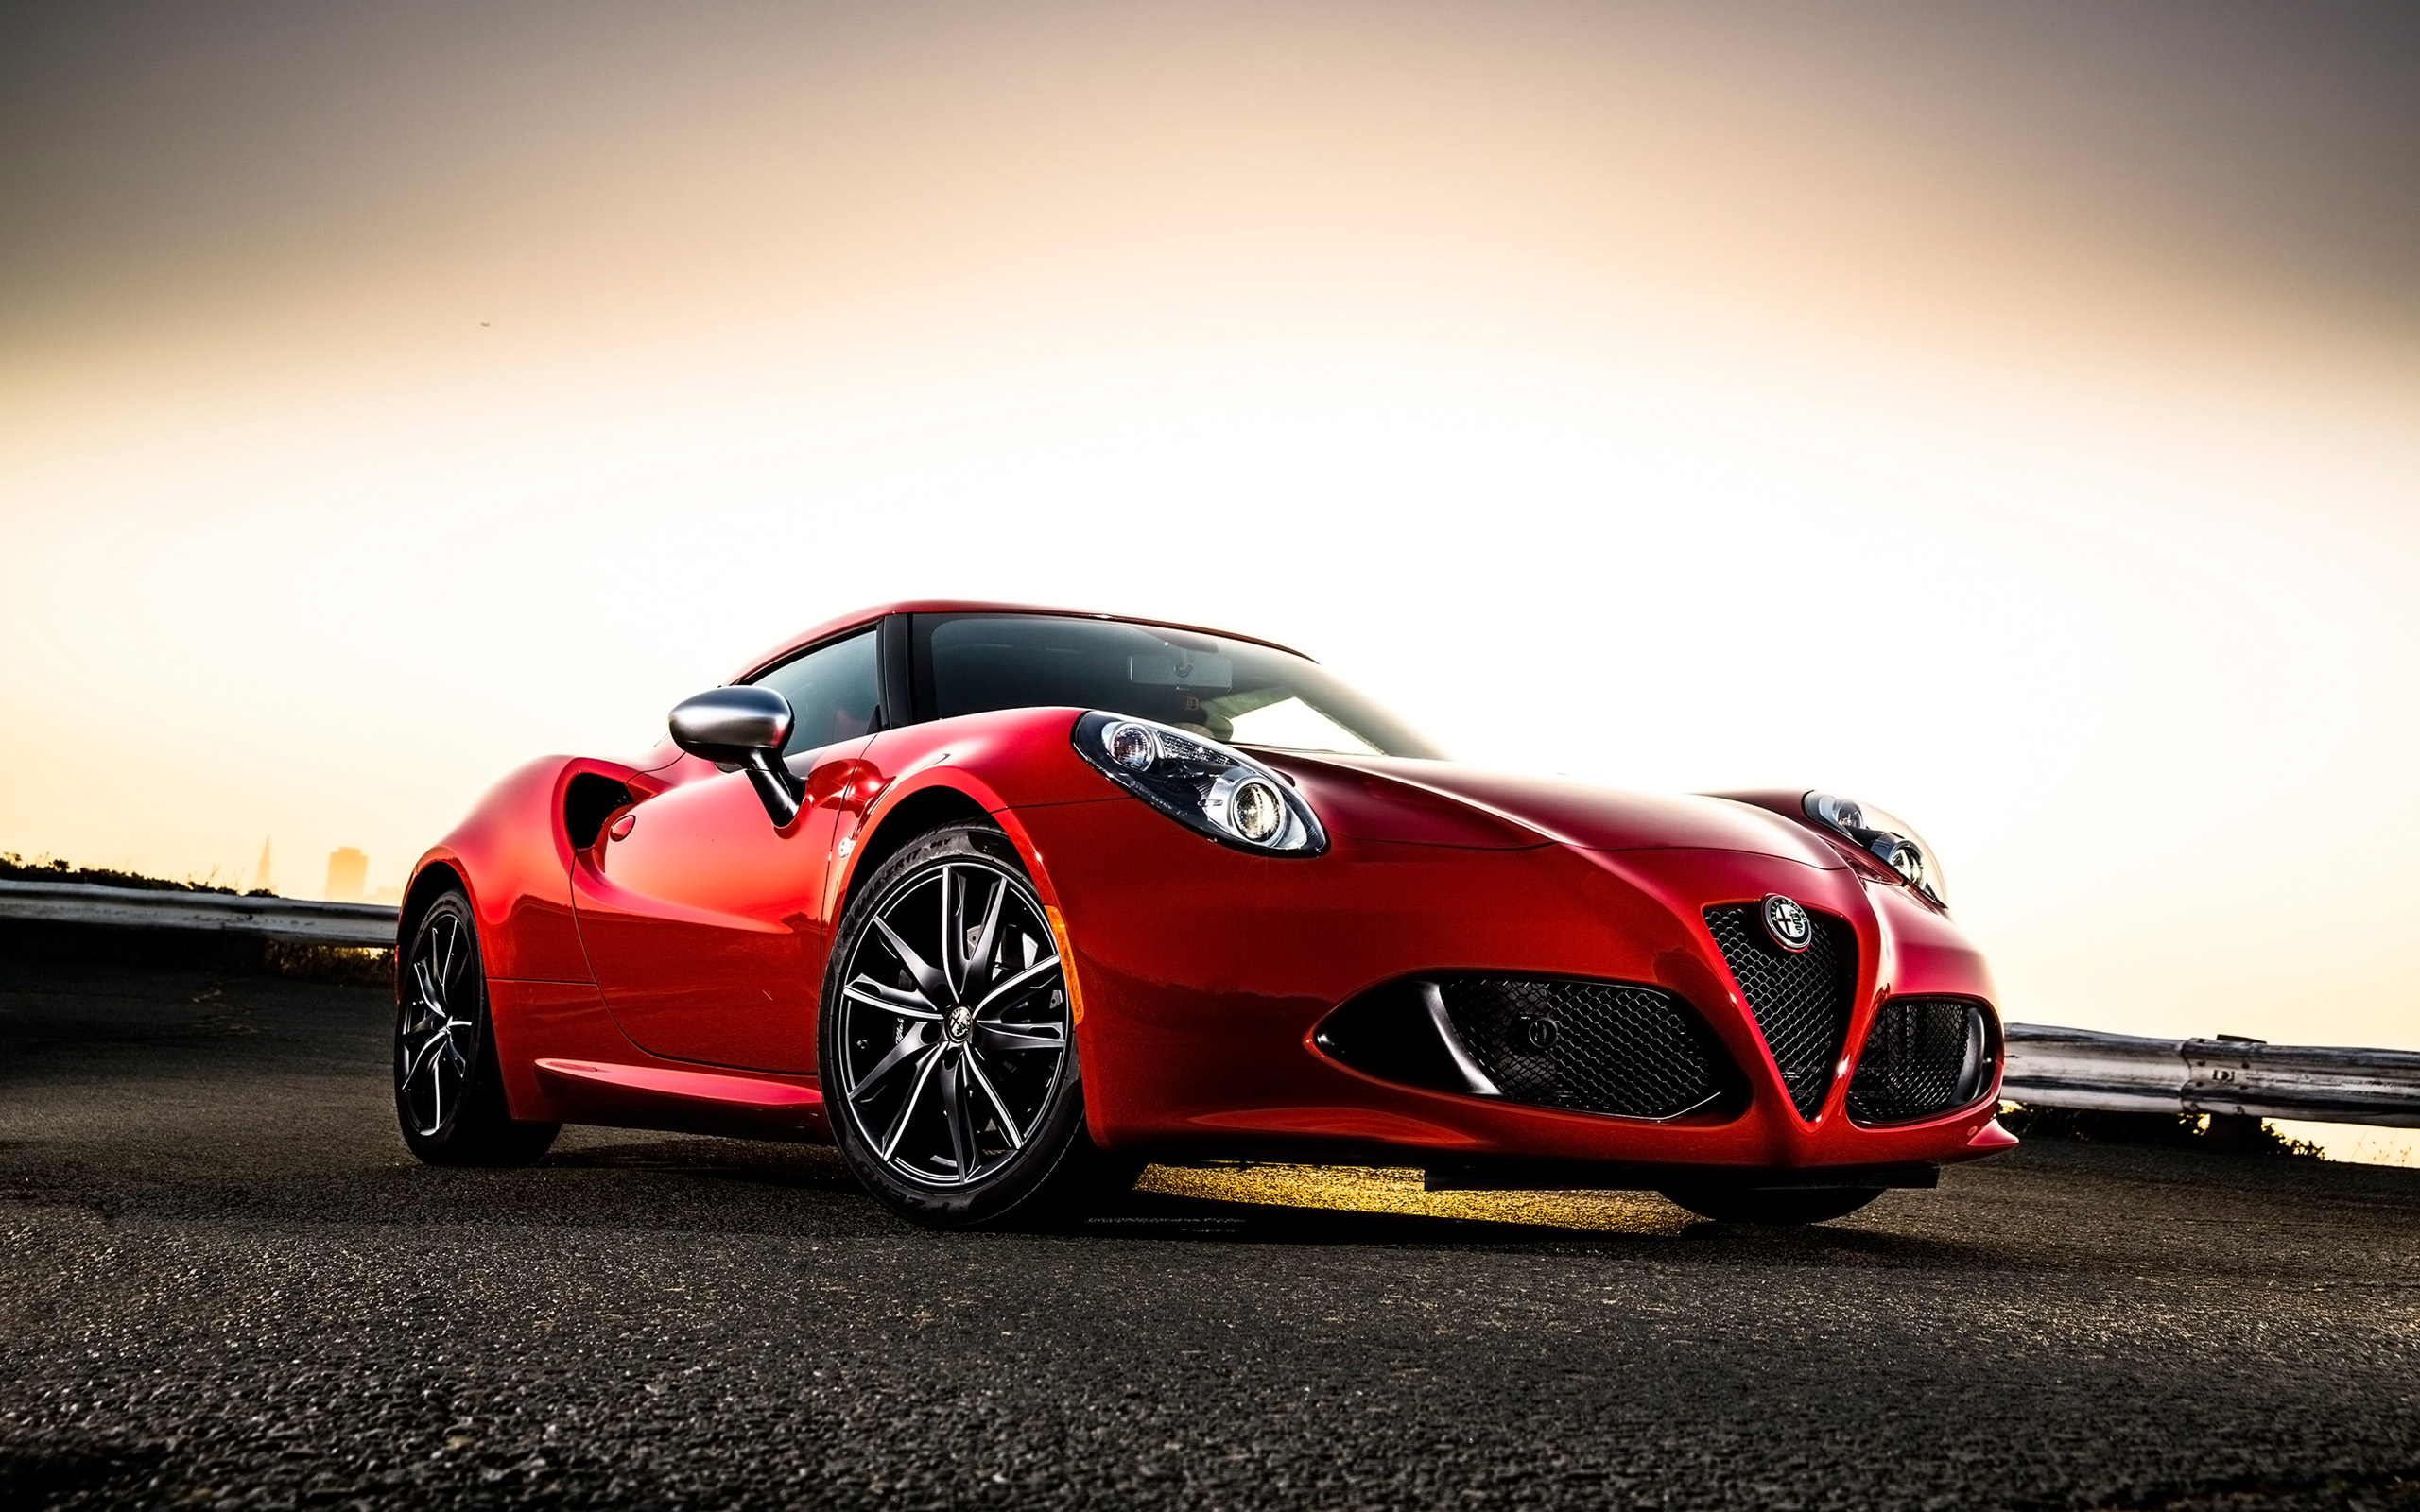 2016 Alfa Romeo 4c Wallpaper Hd Car Wallpapers Id 6648